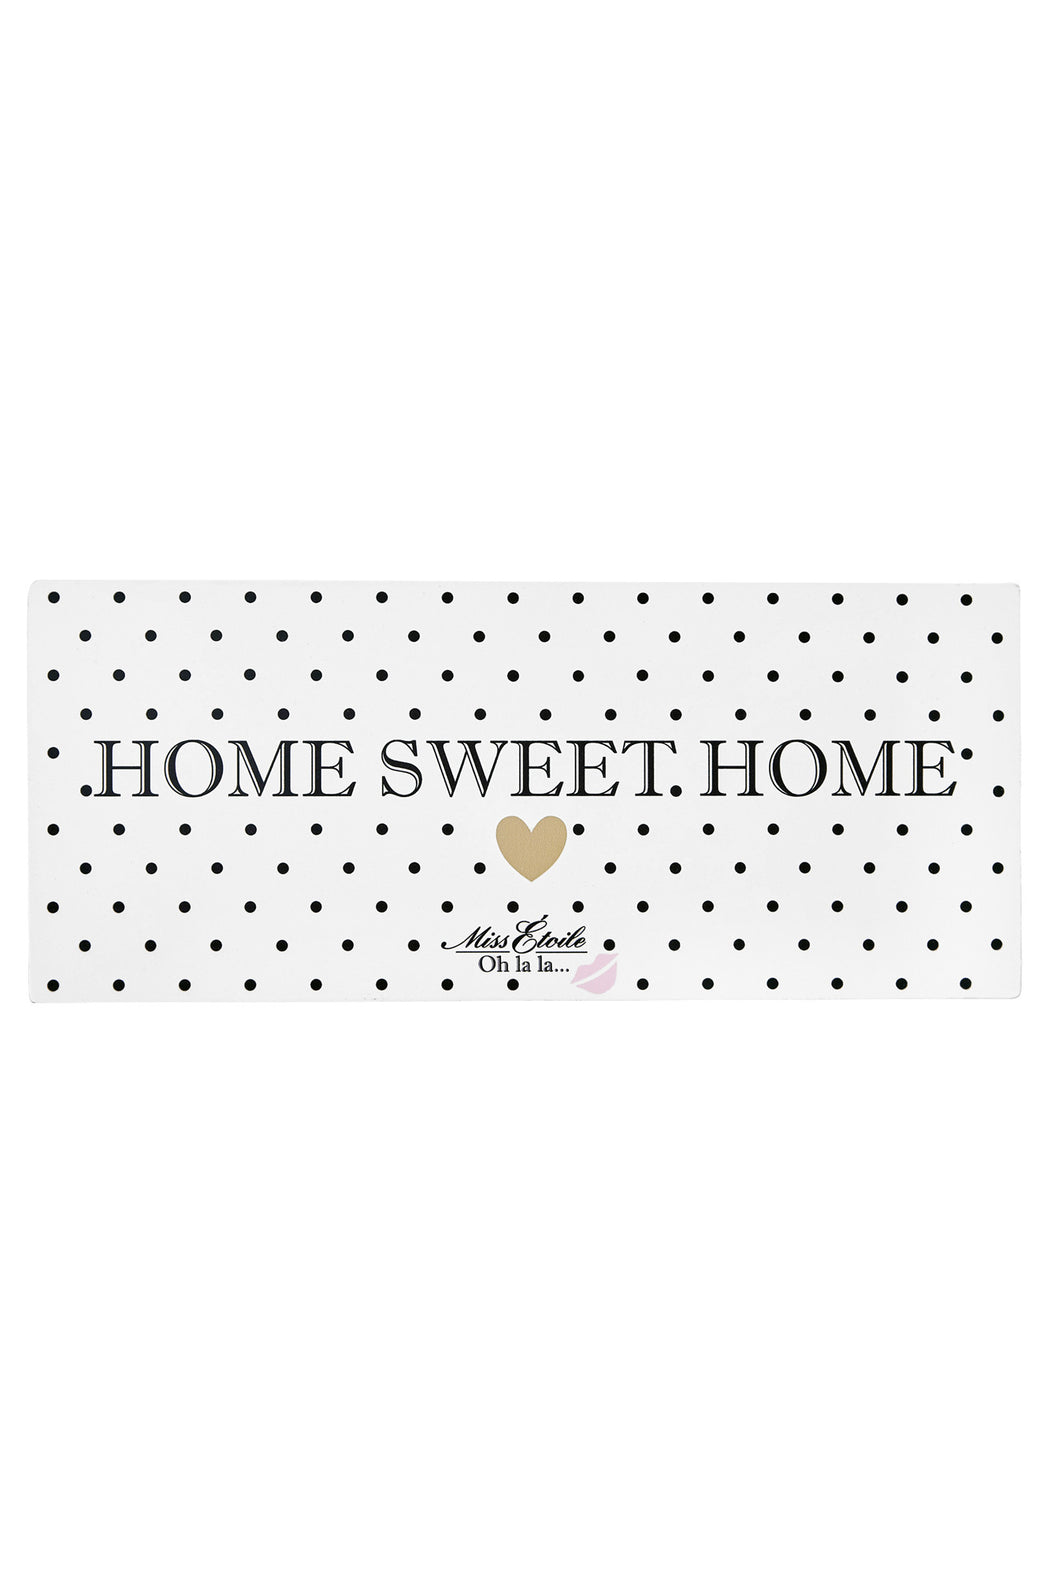 Home Sweet Home Metal Sign, Decor, Miss Etoile - 3LittlePicks